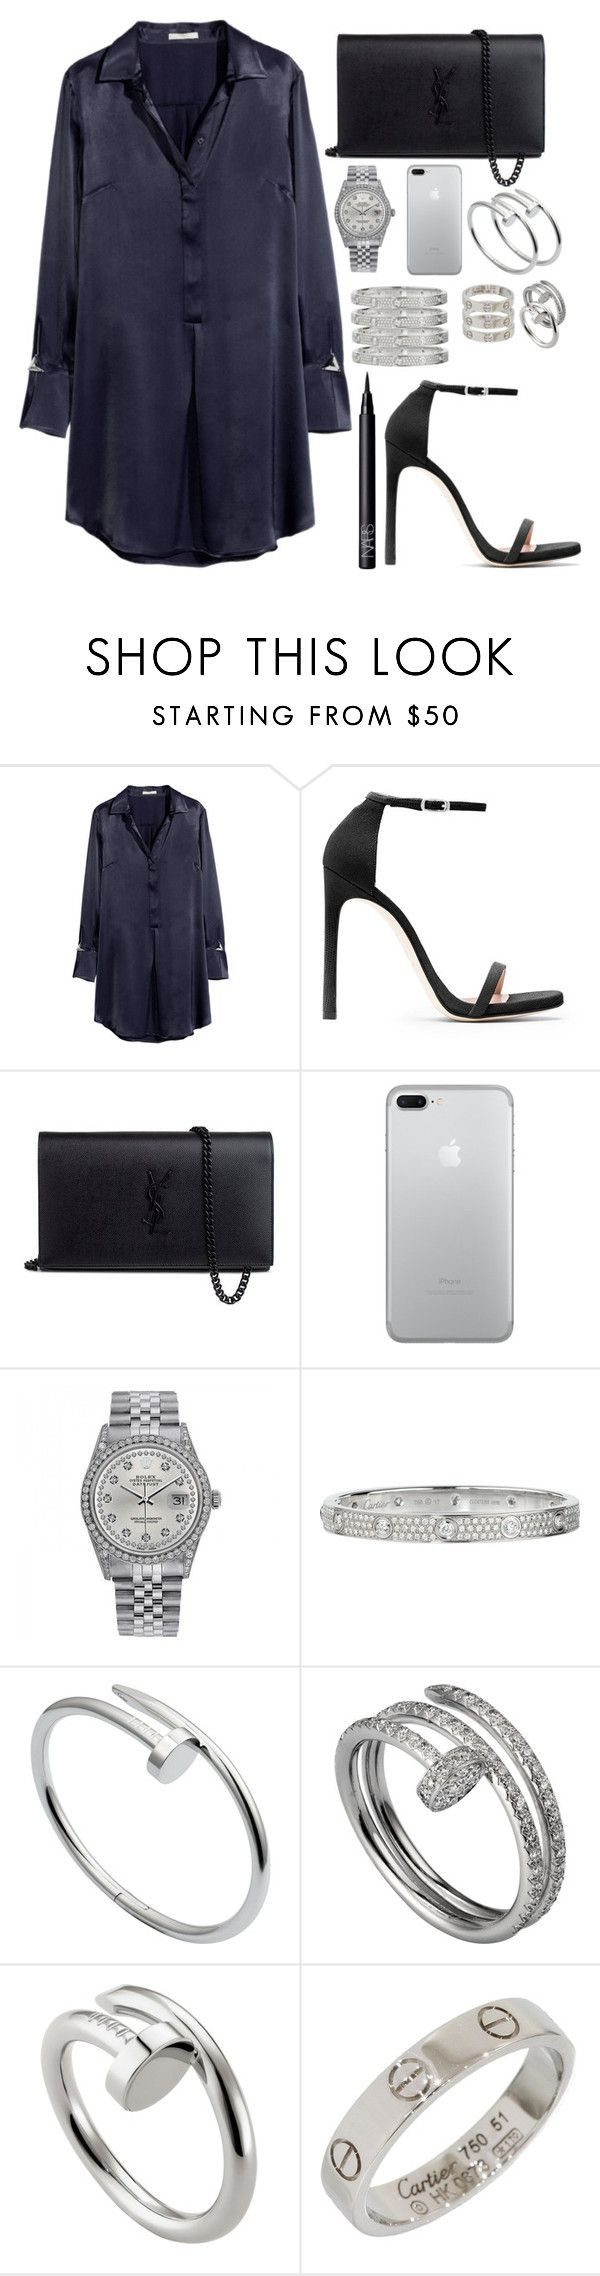 """inspired dinner date outfit"" by crisarranz ❤ liked on Polyvore featuring H&M, Stuart Weitzman, Yves Saint Laurent, Rolex, Cartier and NARS Cosmetics"